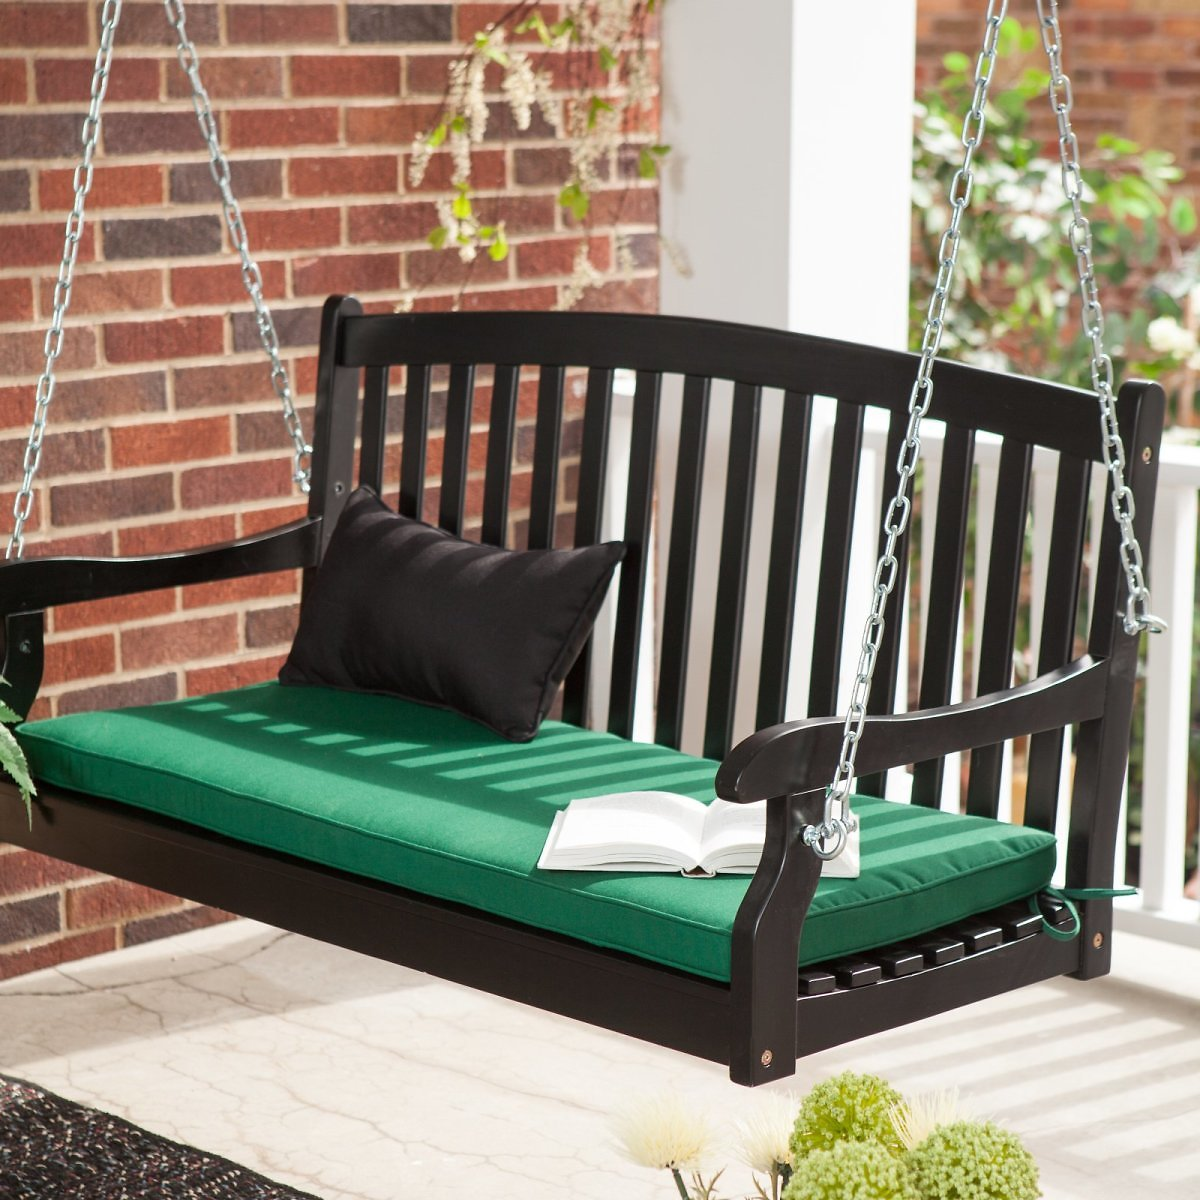 Coral Coast Pleasant Bay All-Weather Curved Back Acacia Wood Porch Swing - Painted Black